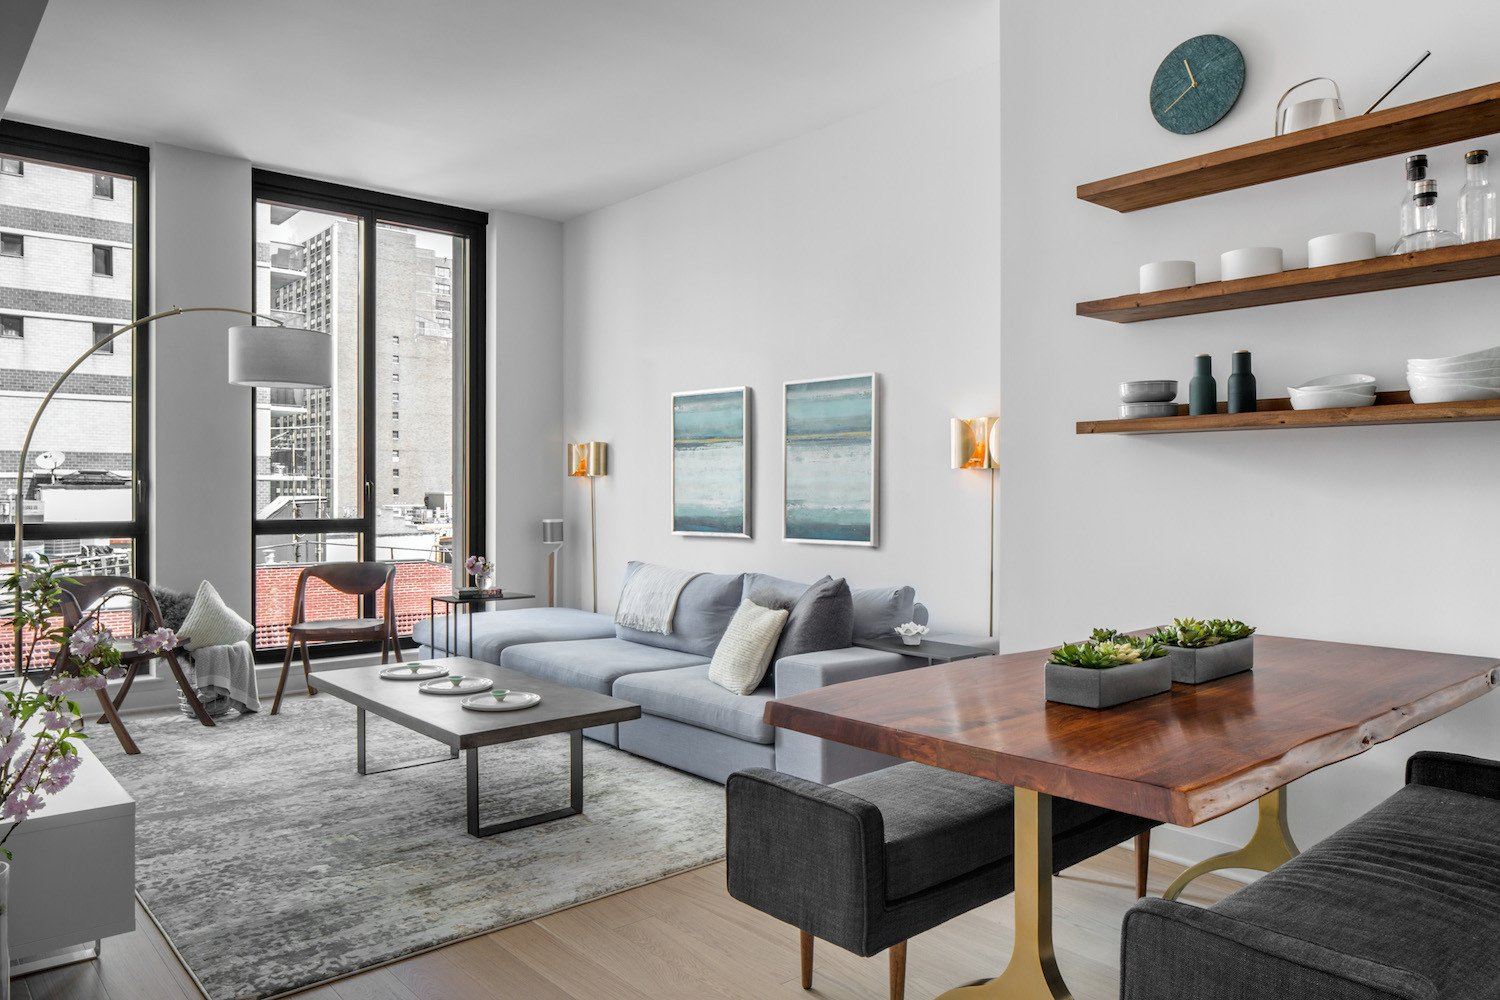 Minimalist Small Living Room Ideas Luxury before & after A Well Manicured Minimalist Apartment